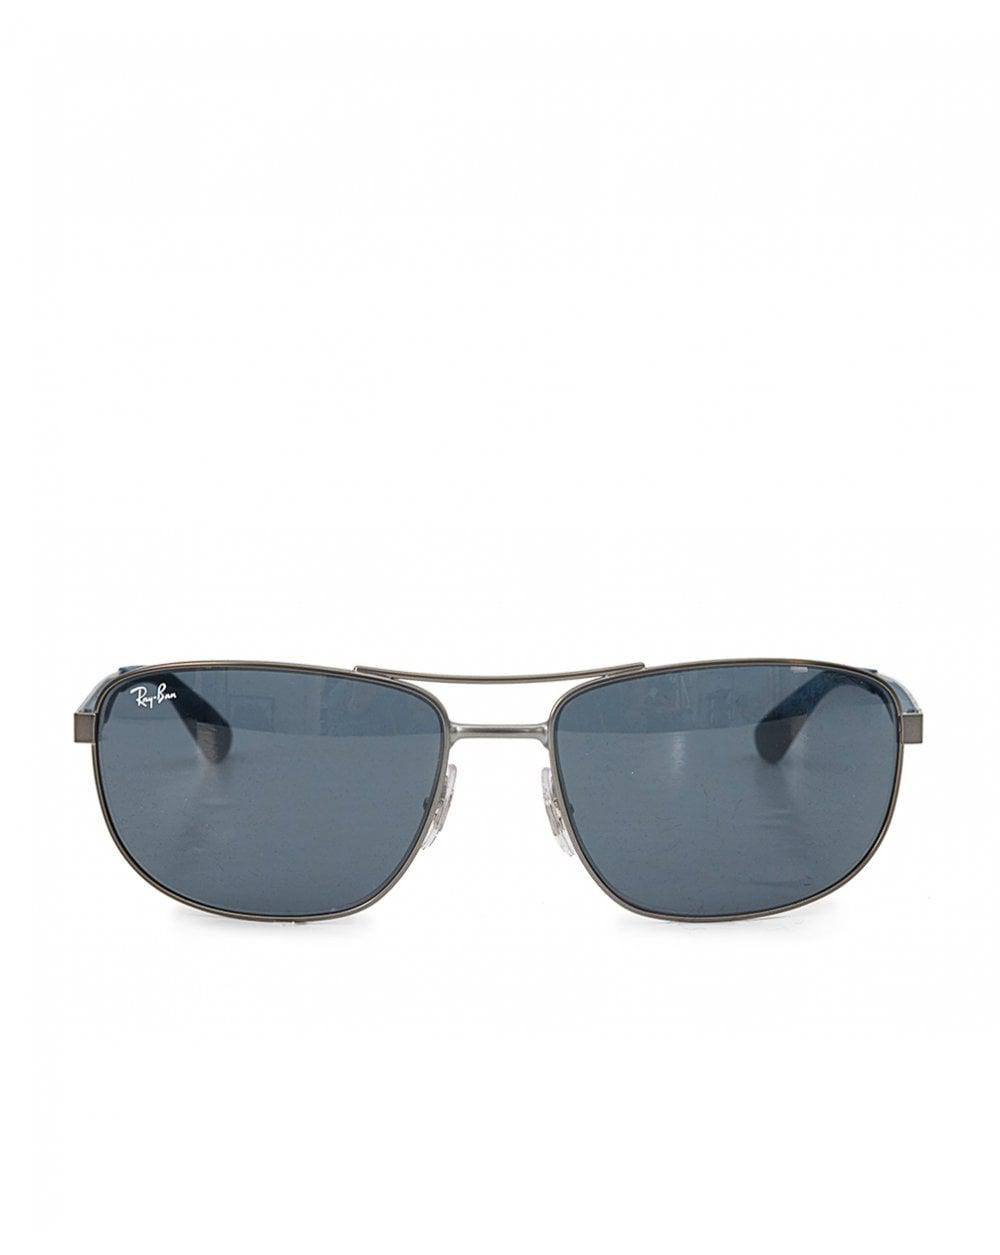 b4cf23957a Ray-Ban Double Bridge Square Sport Sunglasses in Blue for Men - Lyst